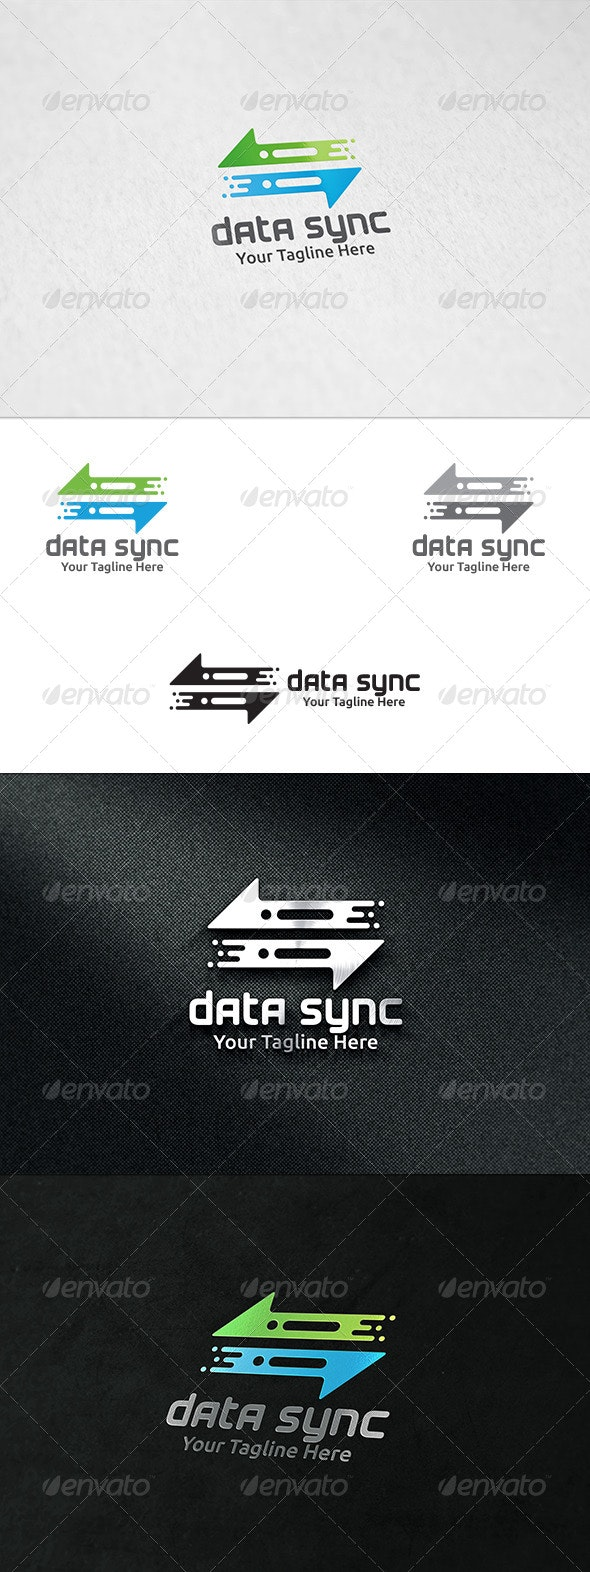 Data Sync - Logo Template - Symbols Logo Templates